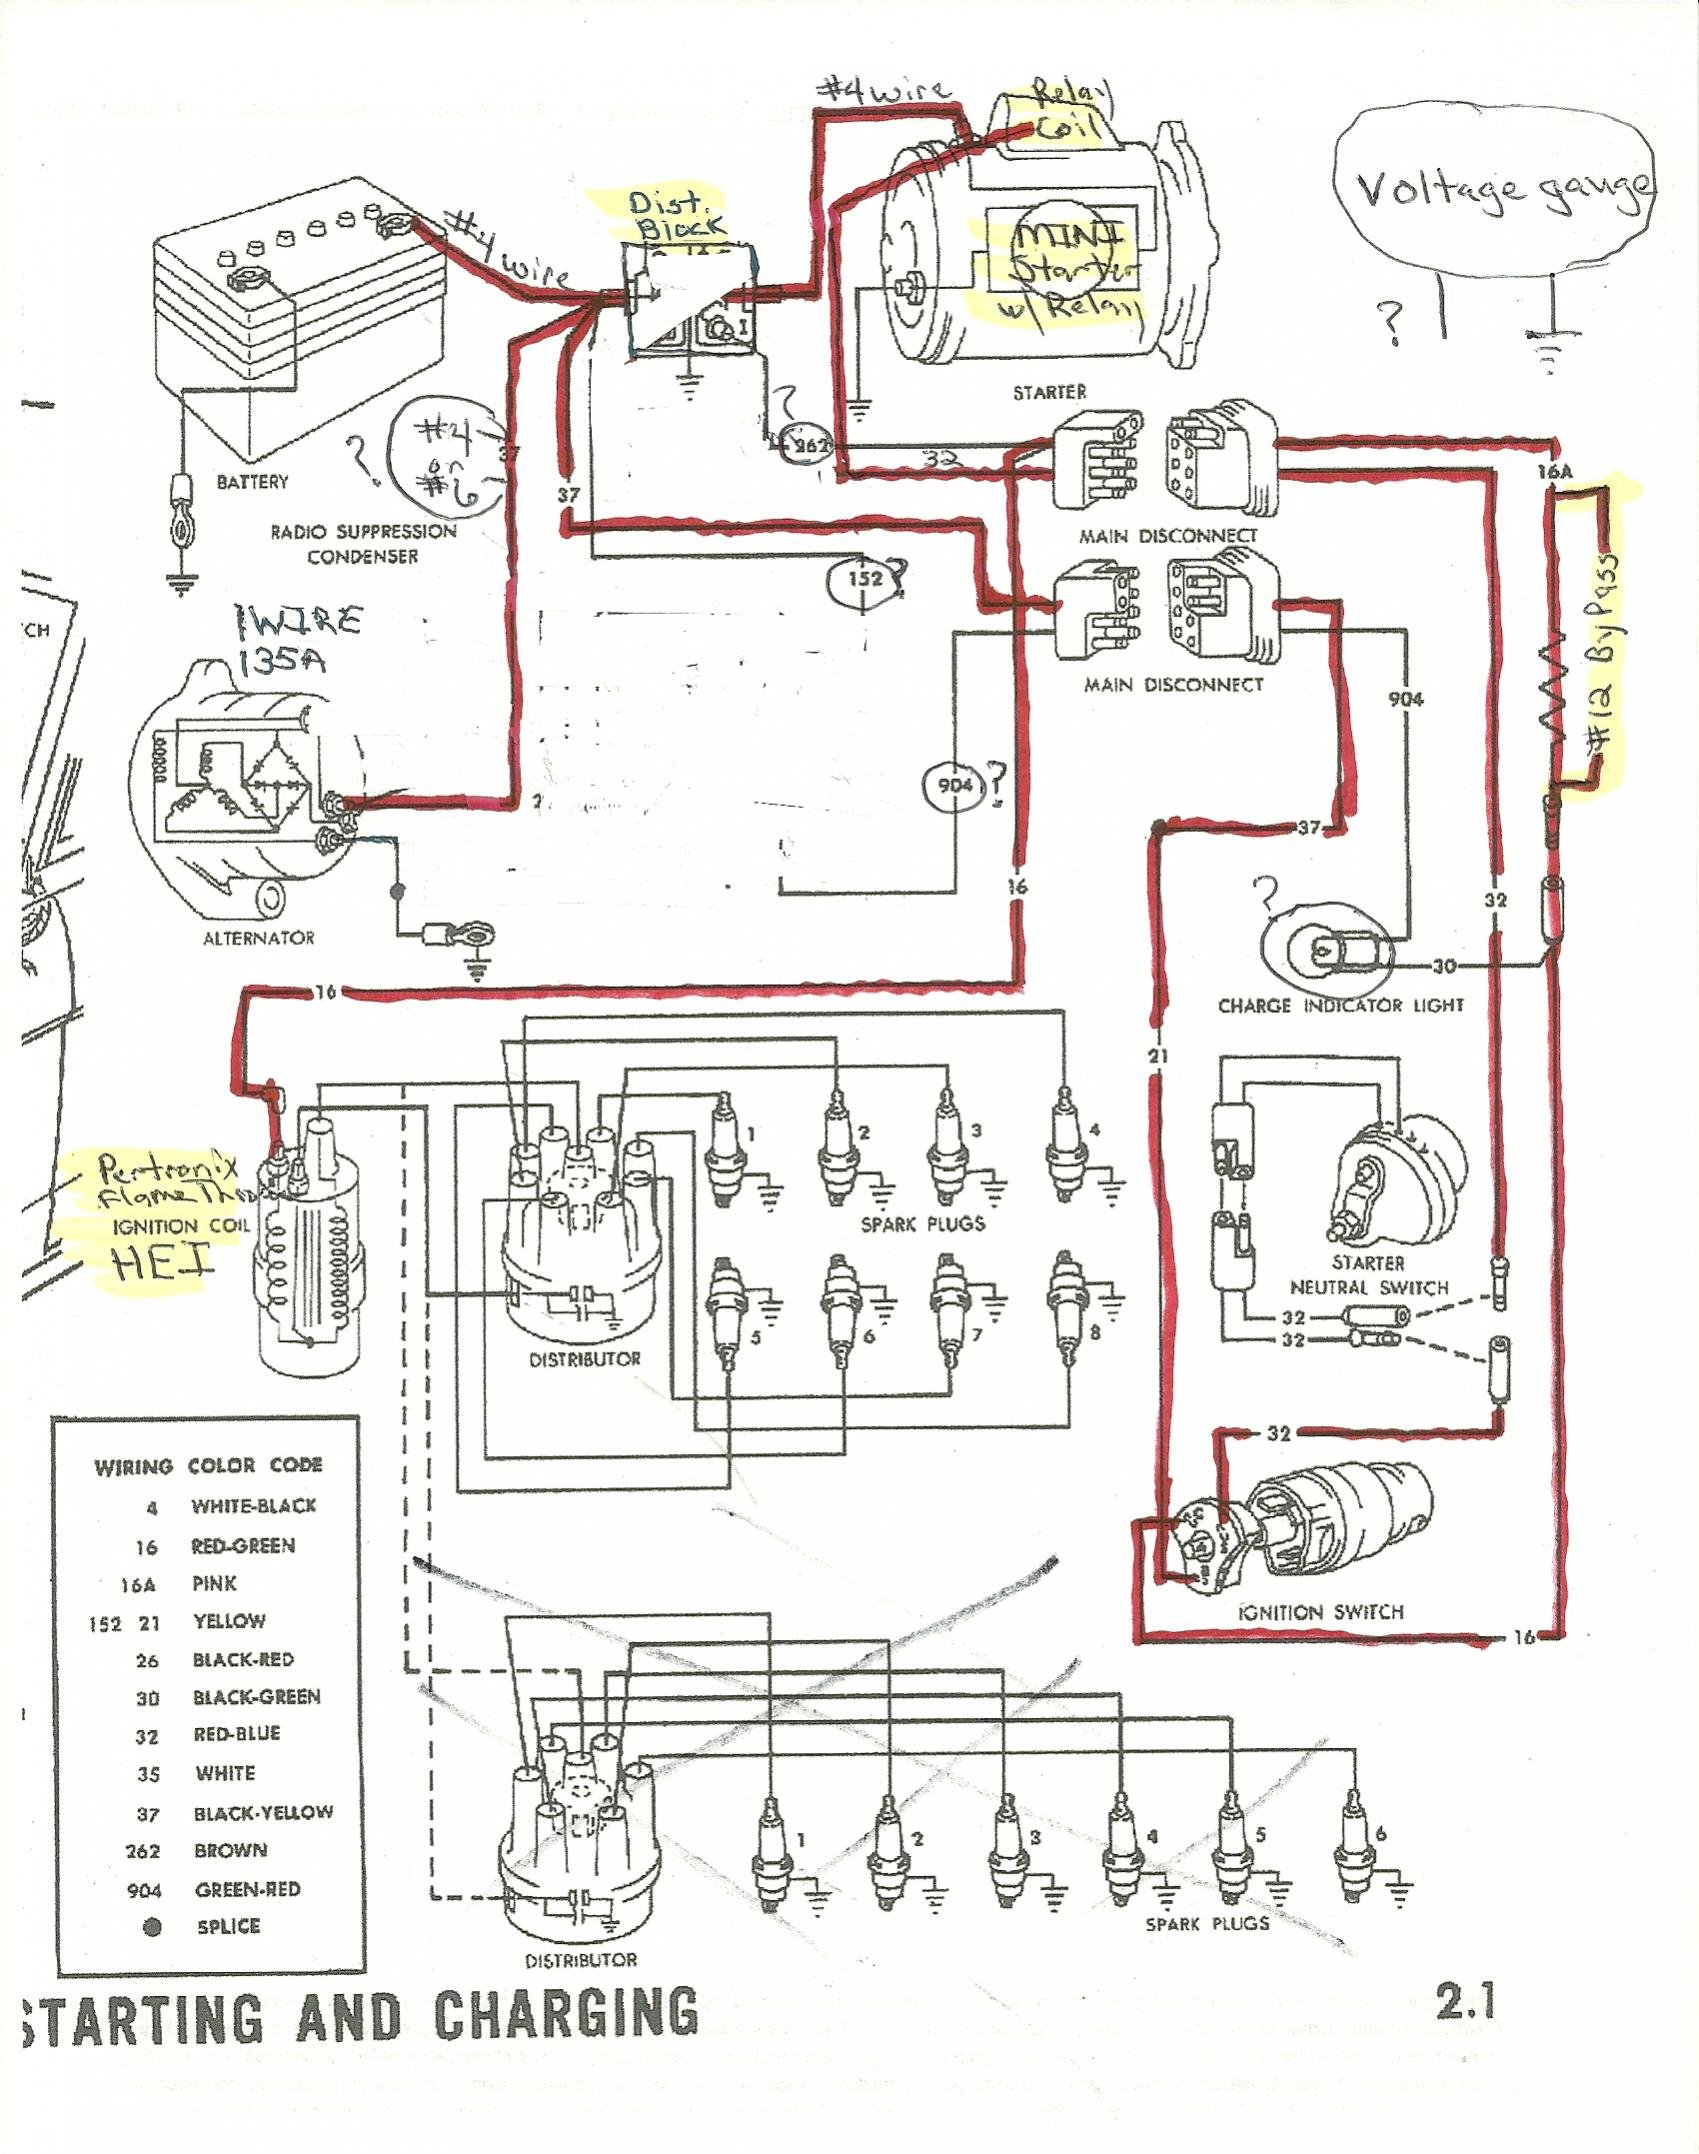 1983 Ford Mustang Alternator Wiring Diagram Free Picture Manual Images Gallery